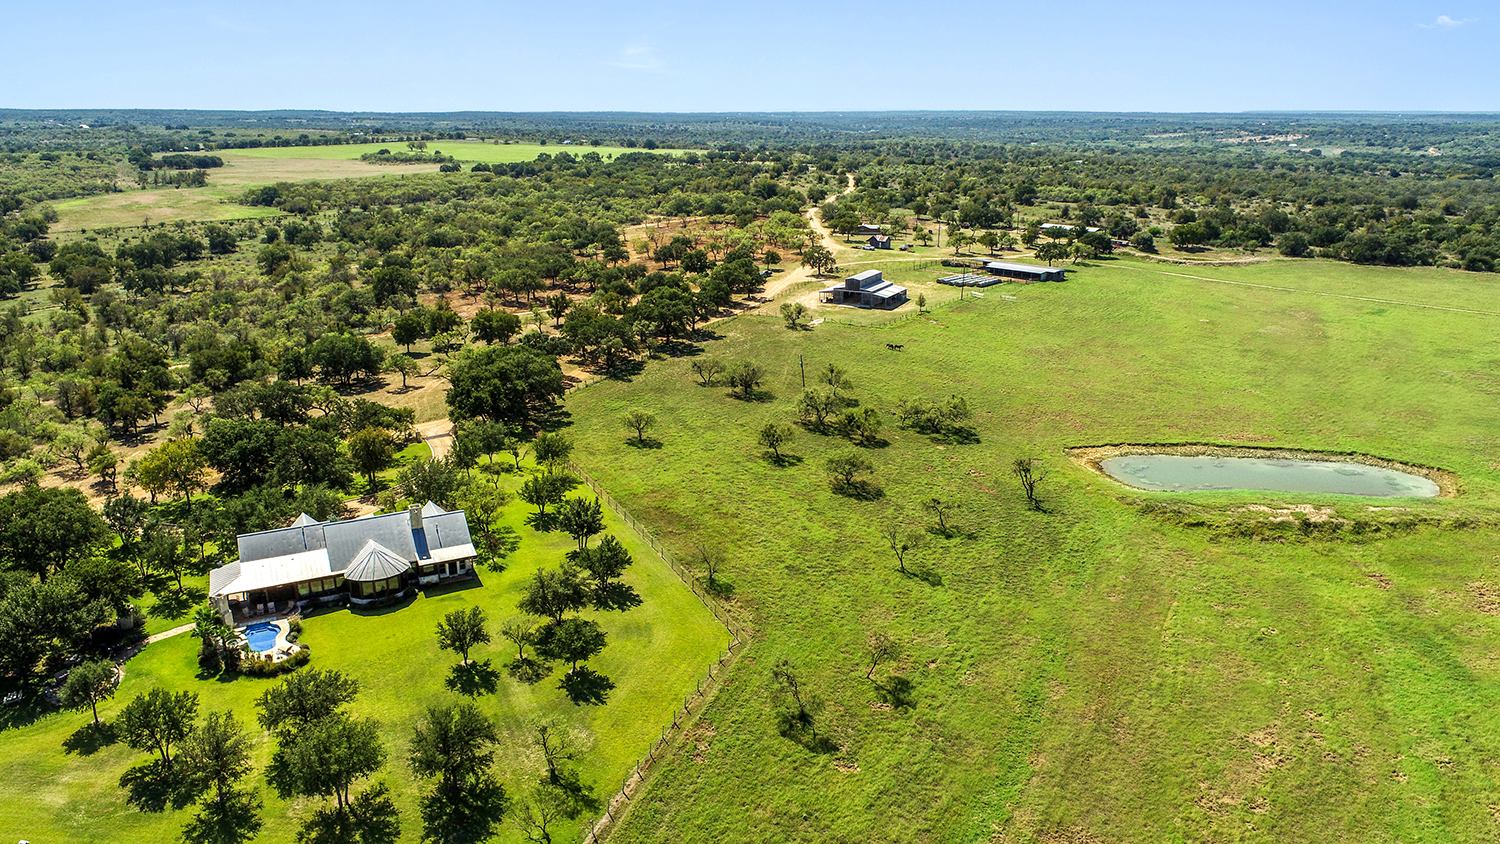 Aerial View of SRK Ranch